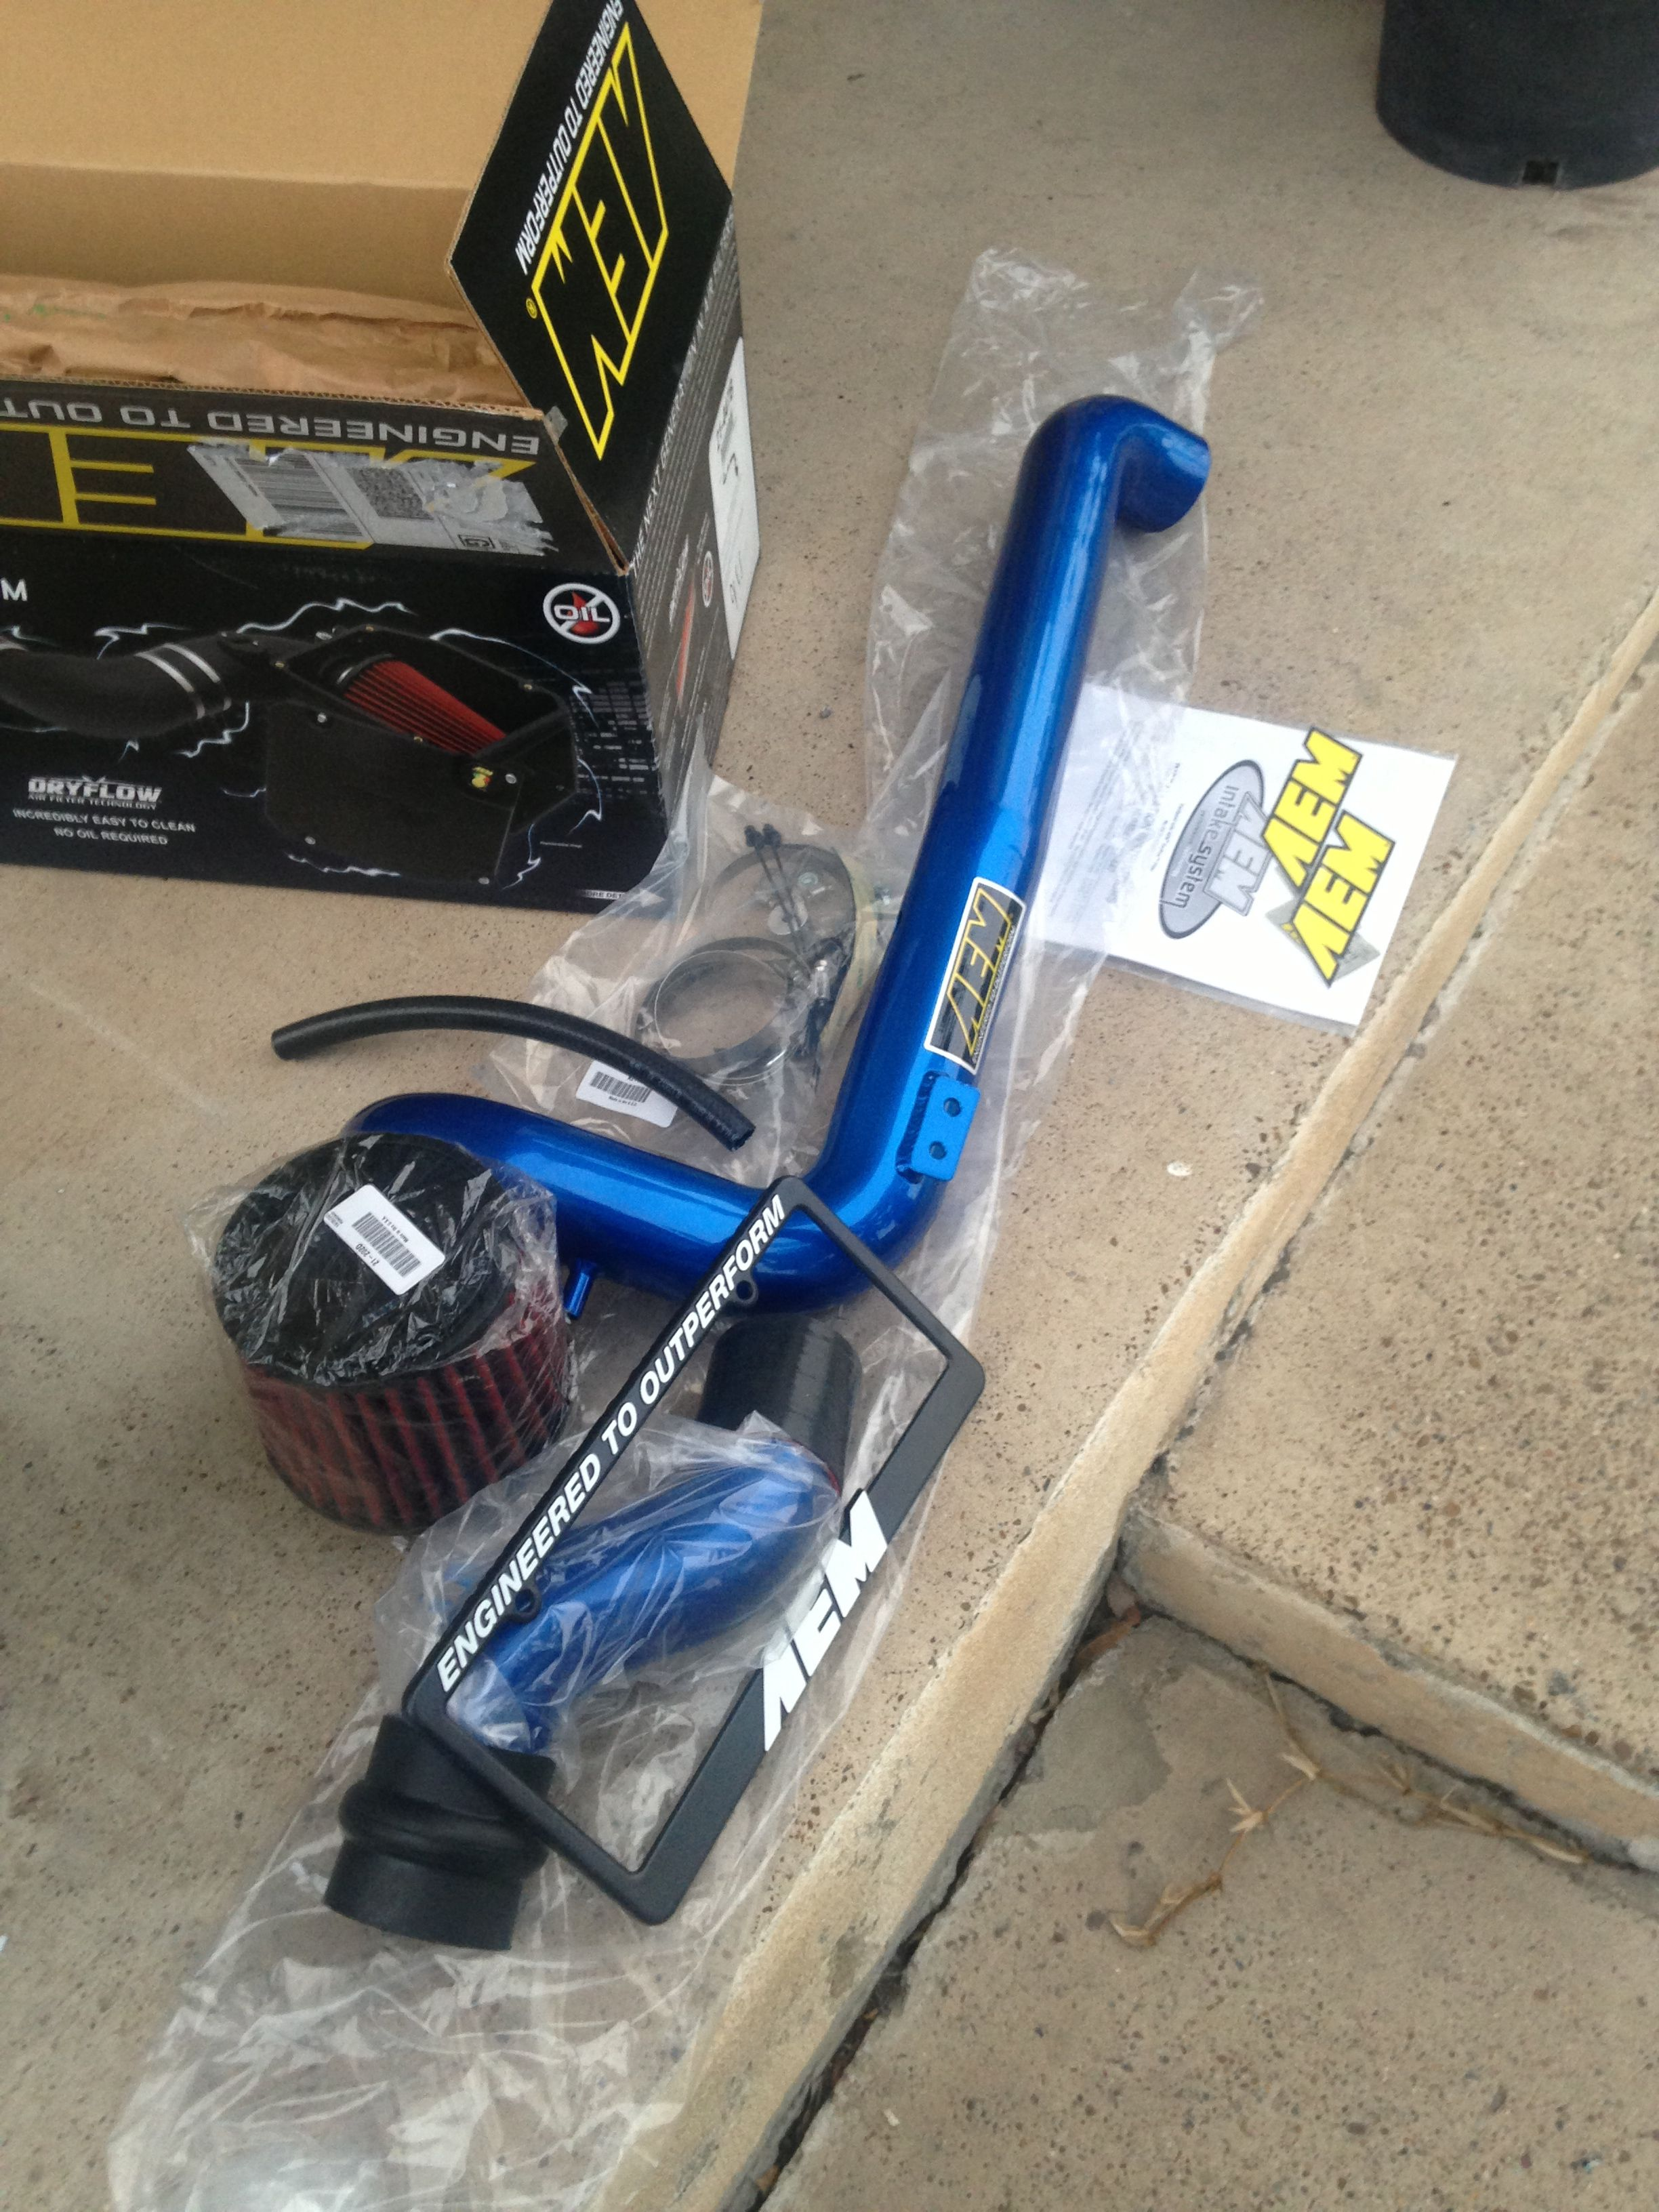 2002 cavalier cold air kit by AEM. My customer is going to